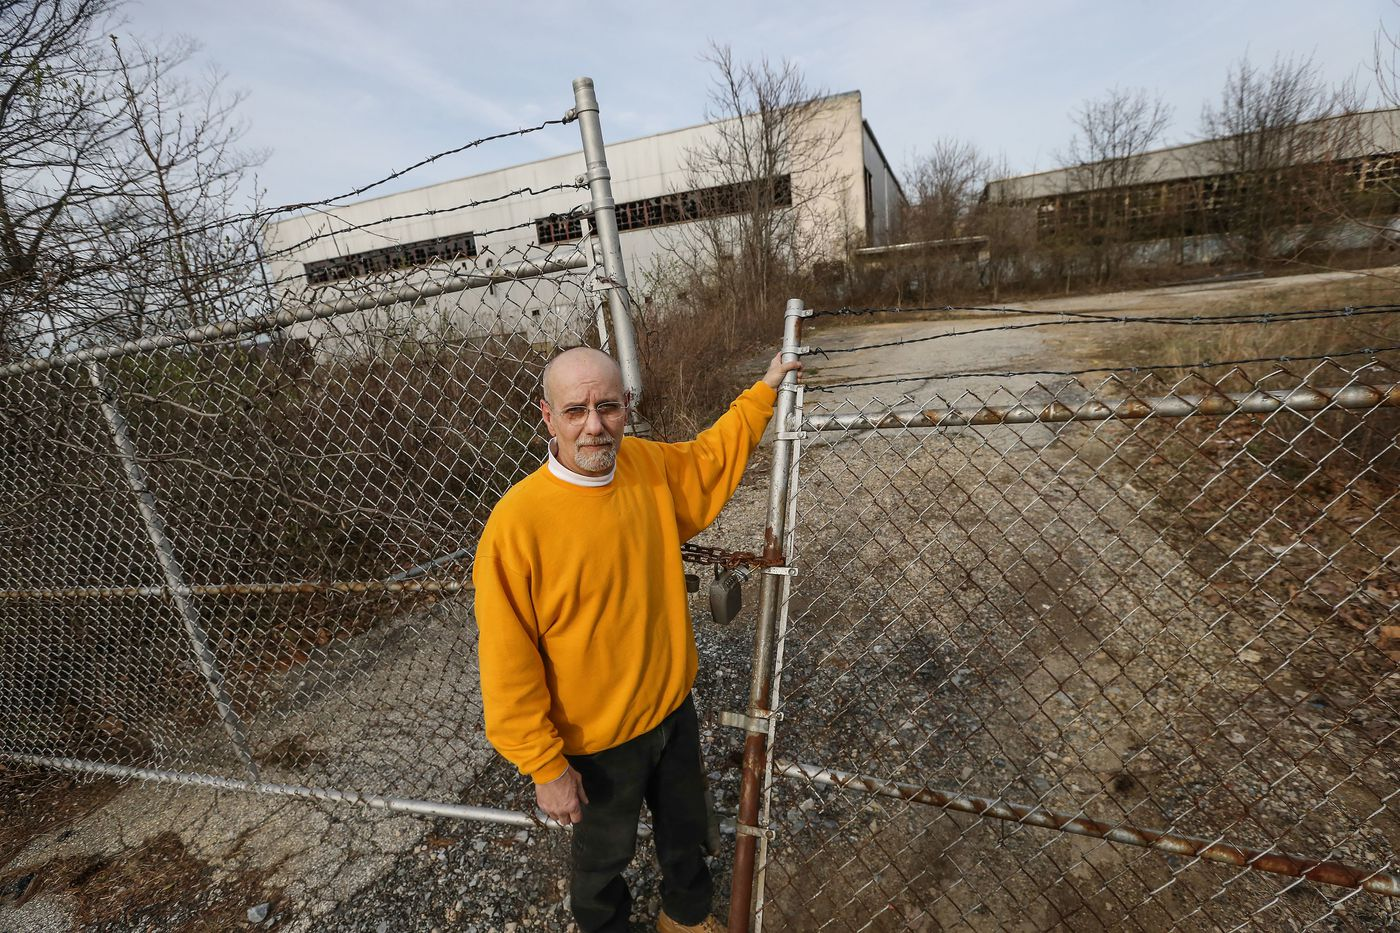 State court ruling favors Chesco residents protesting brownfield development